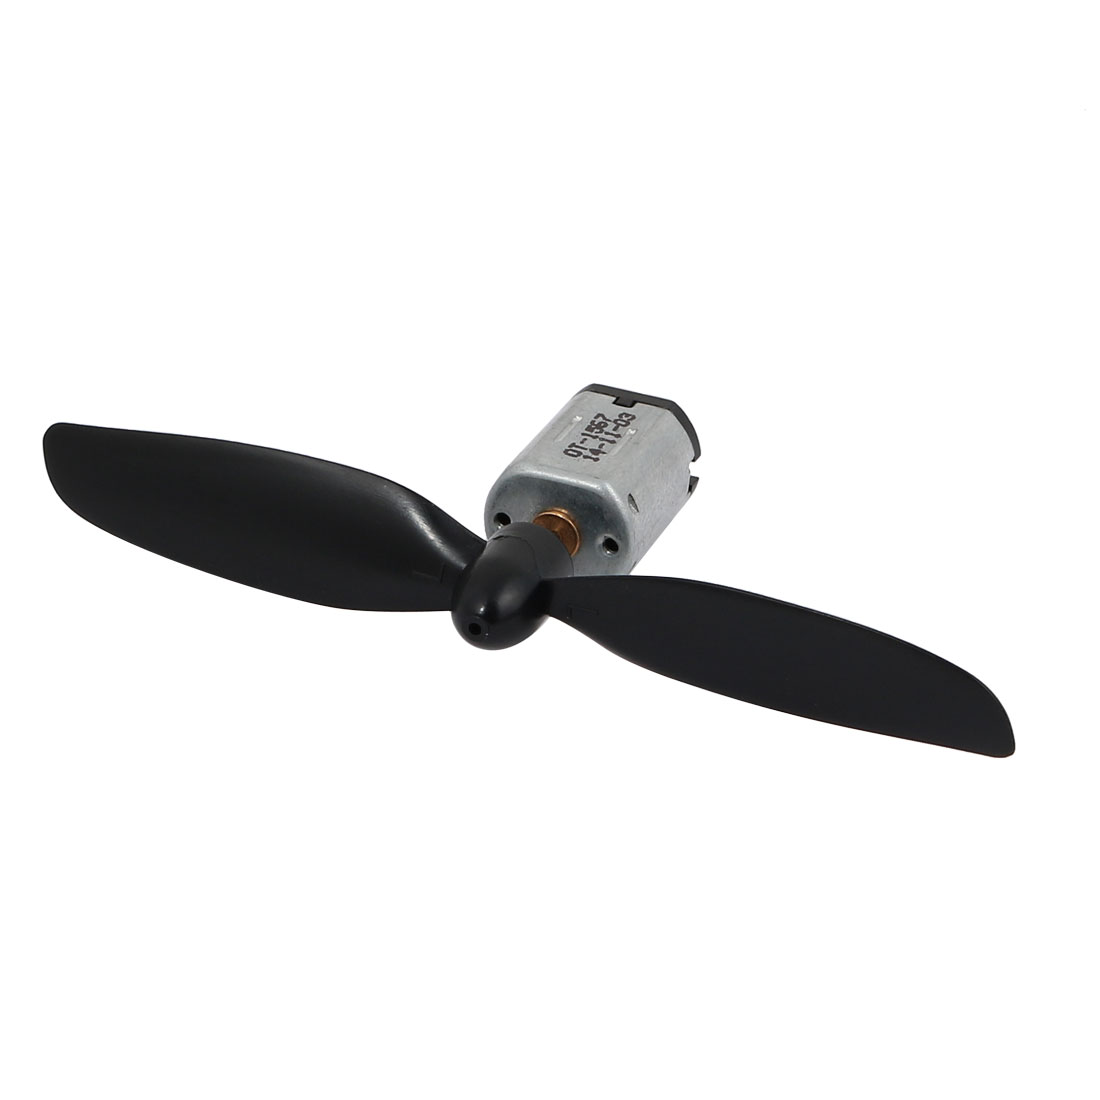 DC 4.5V 37000RPM N20 High Speed Strong Magnetic Motor w Helicopter CCW Propeller